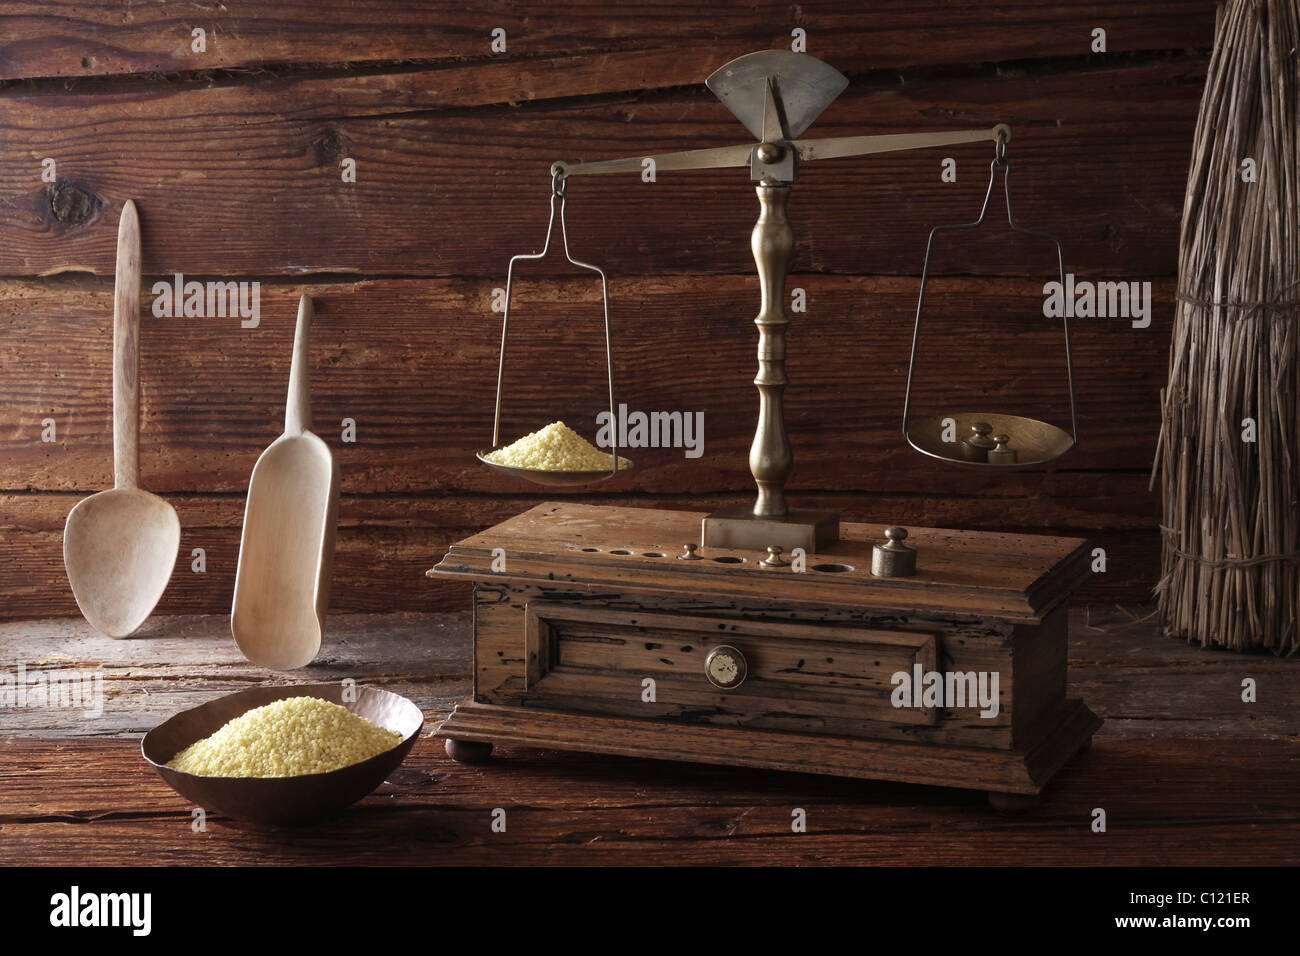 Antique scales weighing grains of Millet (Panicum miliaceum) on a wooden surface - Stock Image